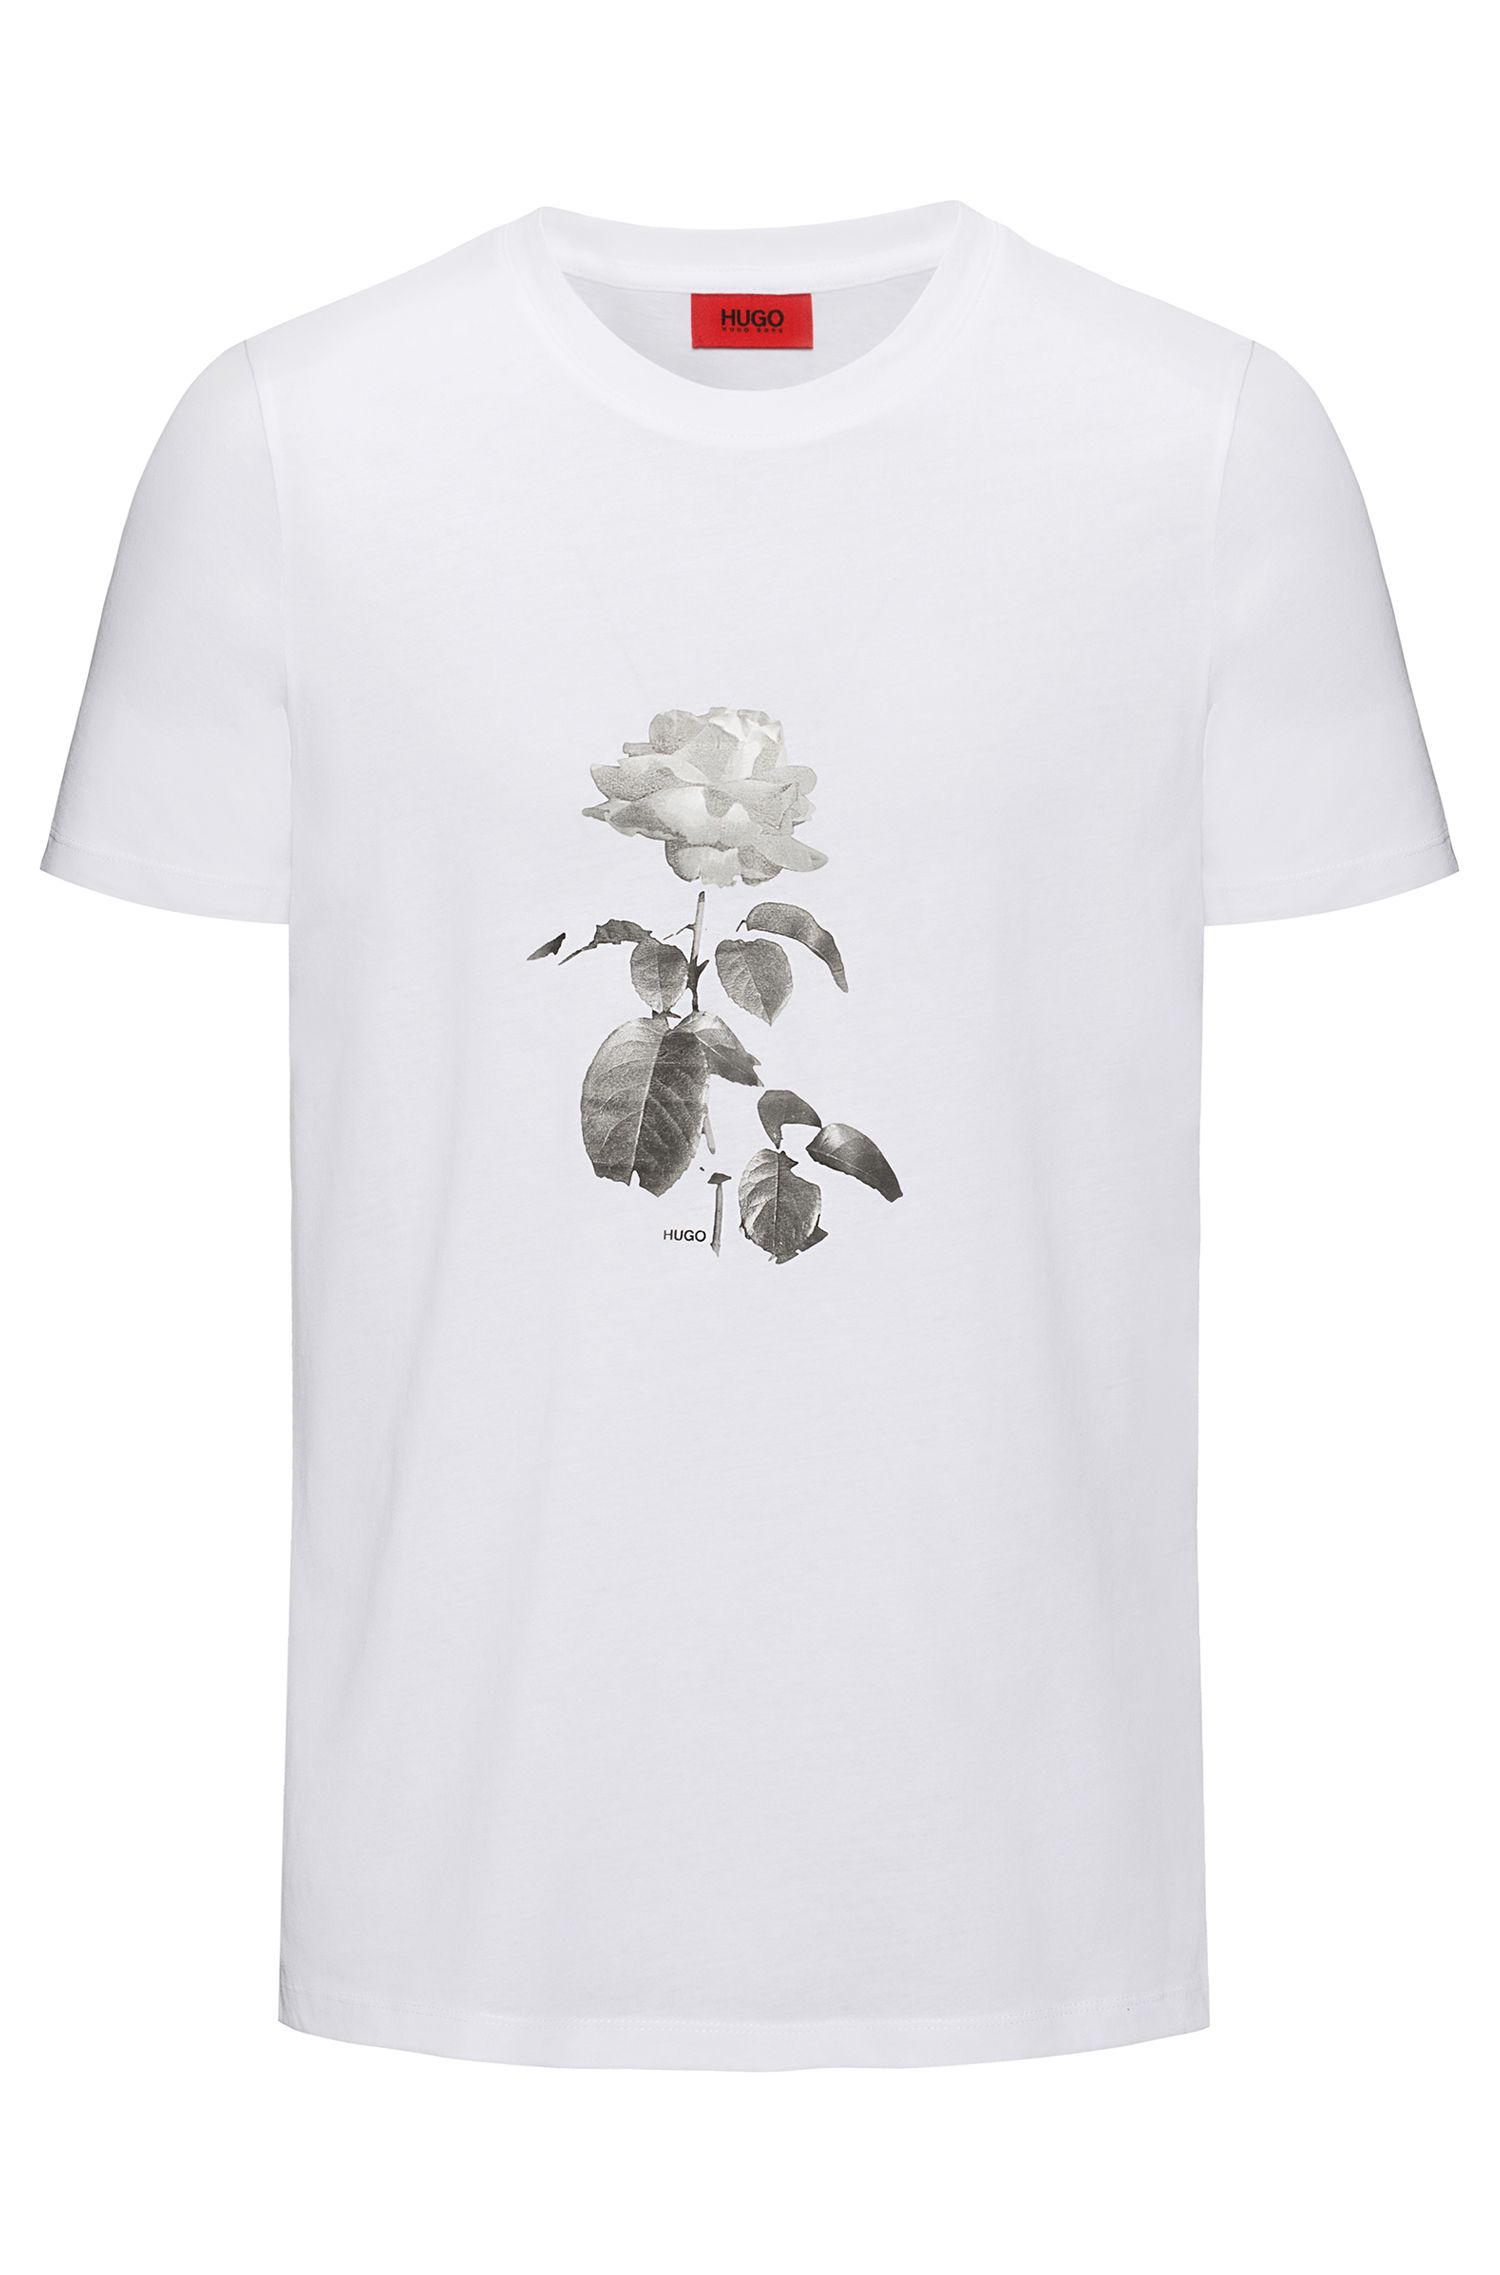 T-shirt regular fit in cotone con stampa di un fiore